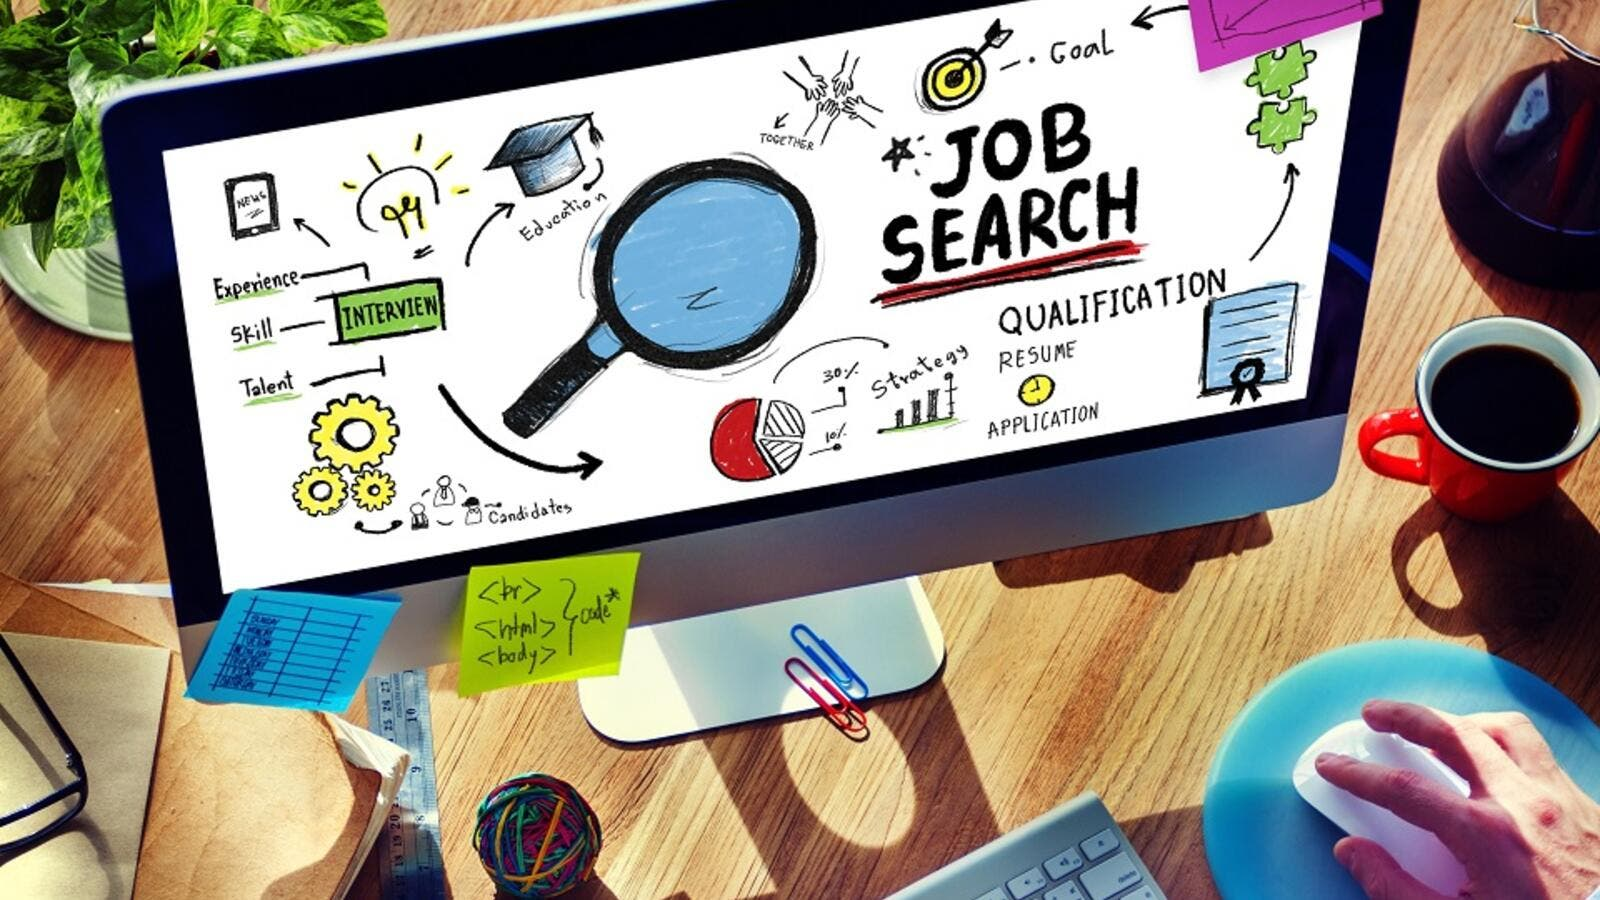 6 Facts You Need to Check If You Rely on Bayt.Com for Job Search. (Shutterstock)